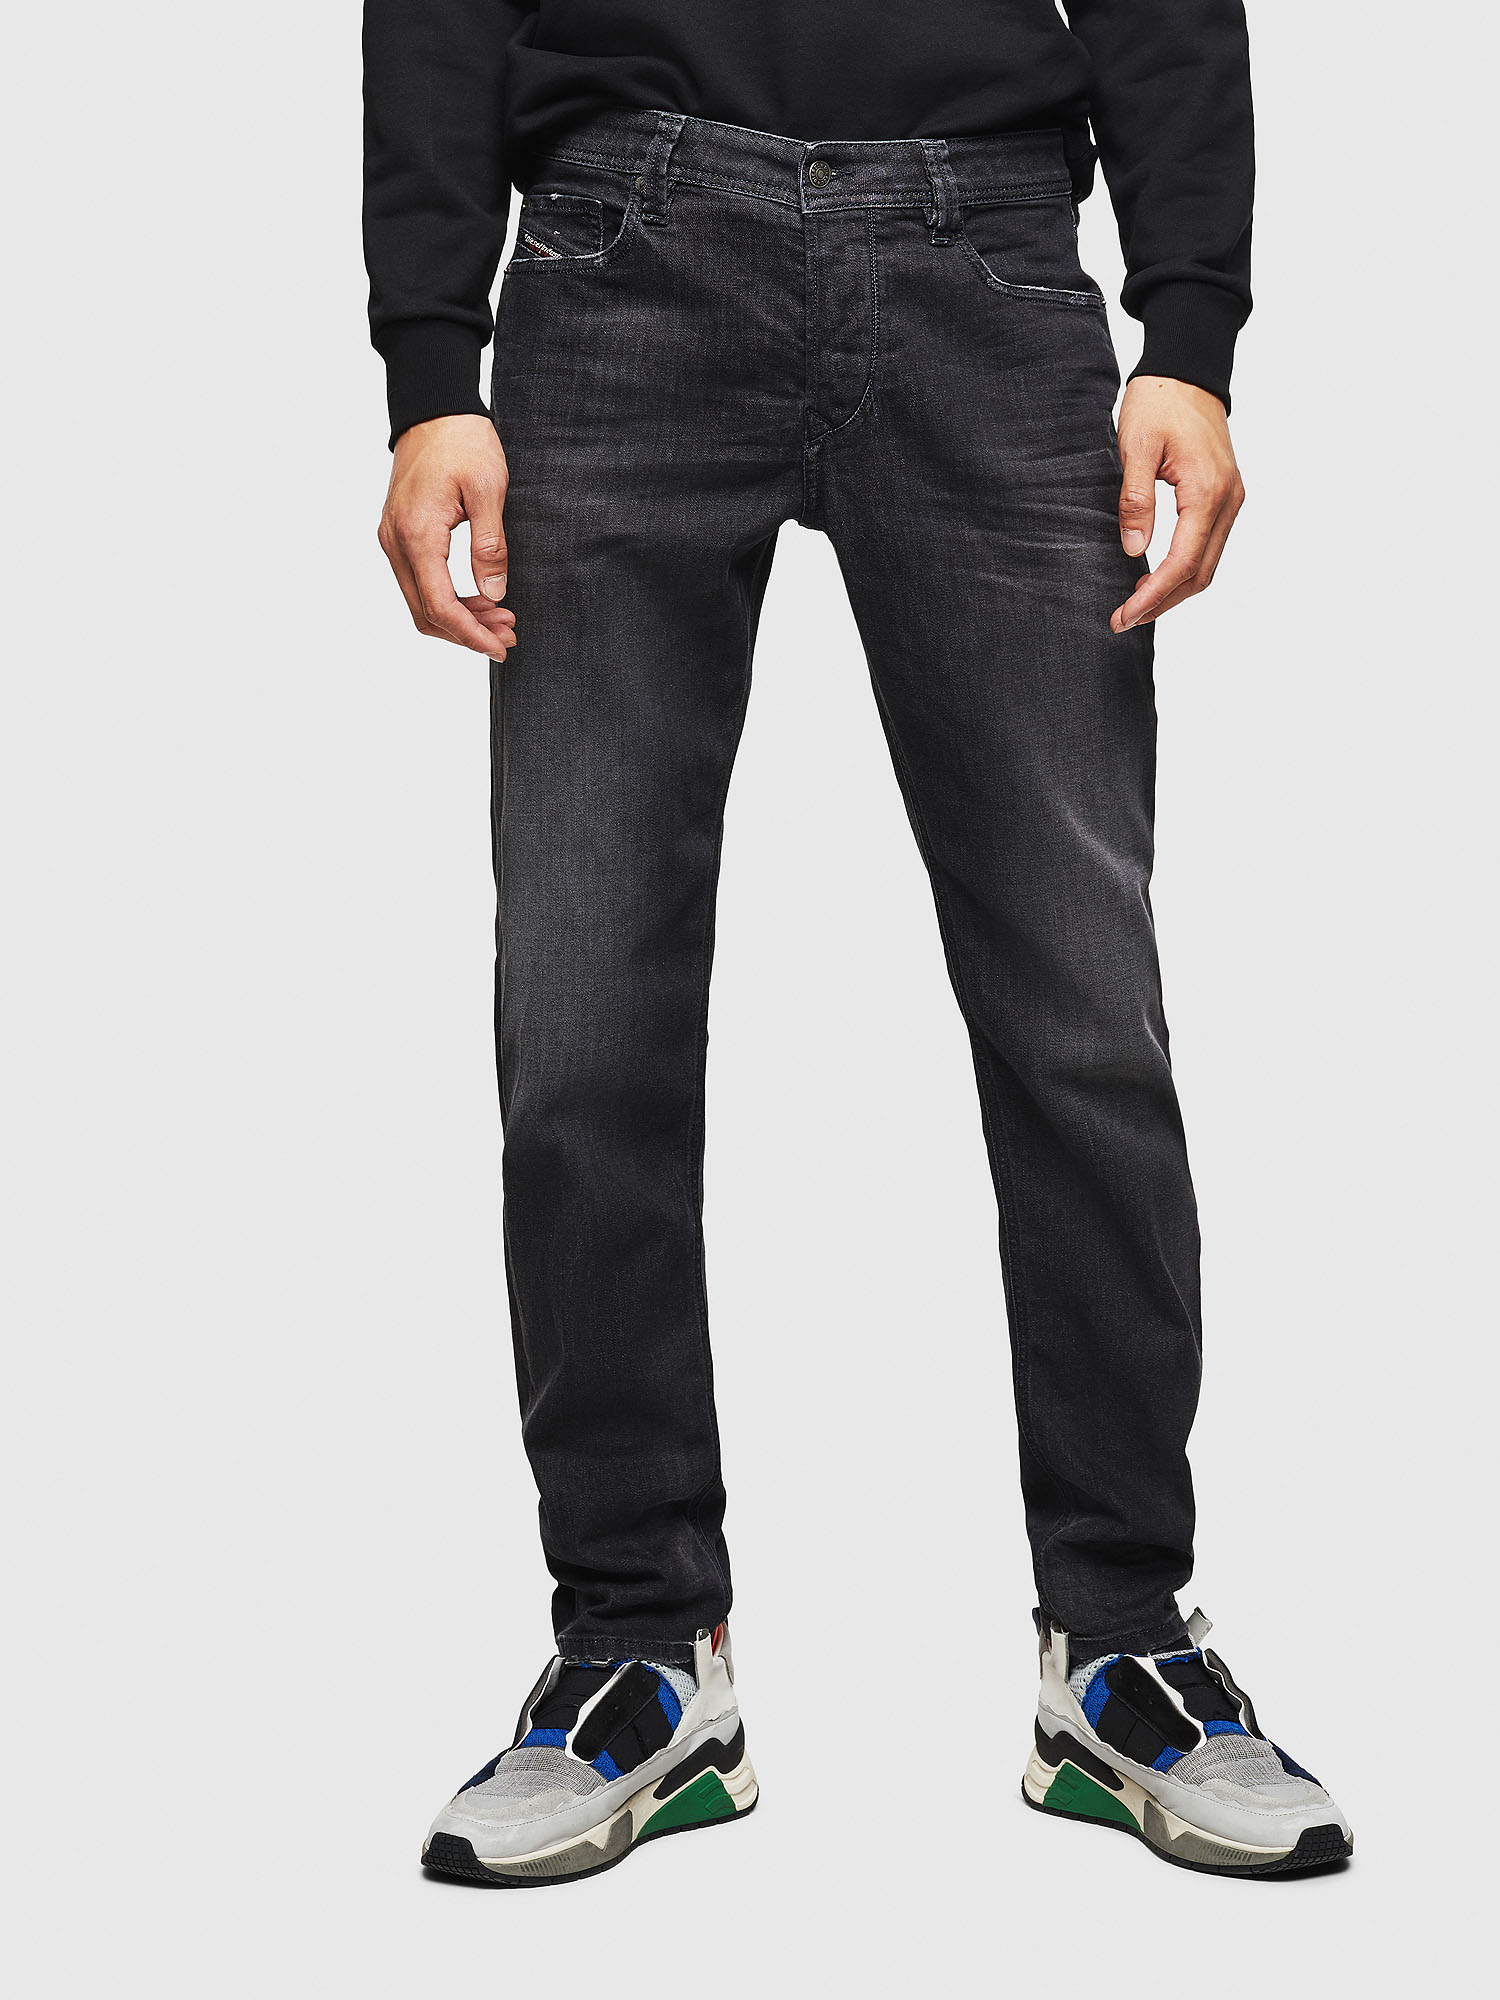 Diesel - Larkee-Beex 082AS,  - Jeans - Image 1